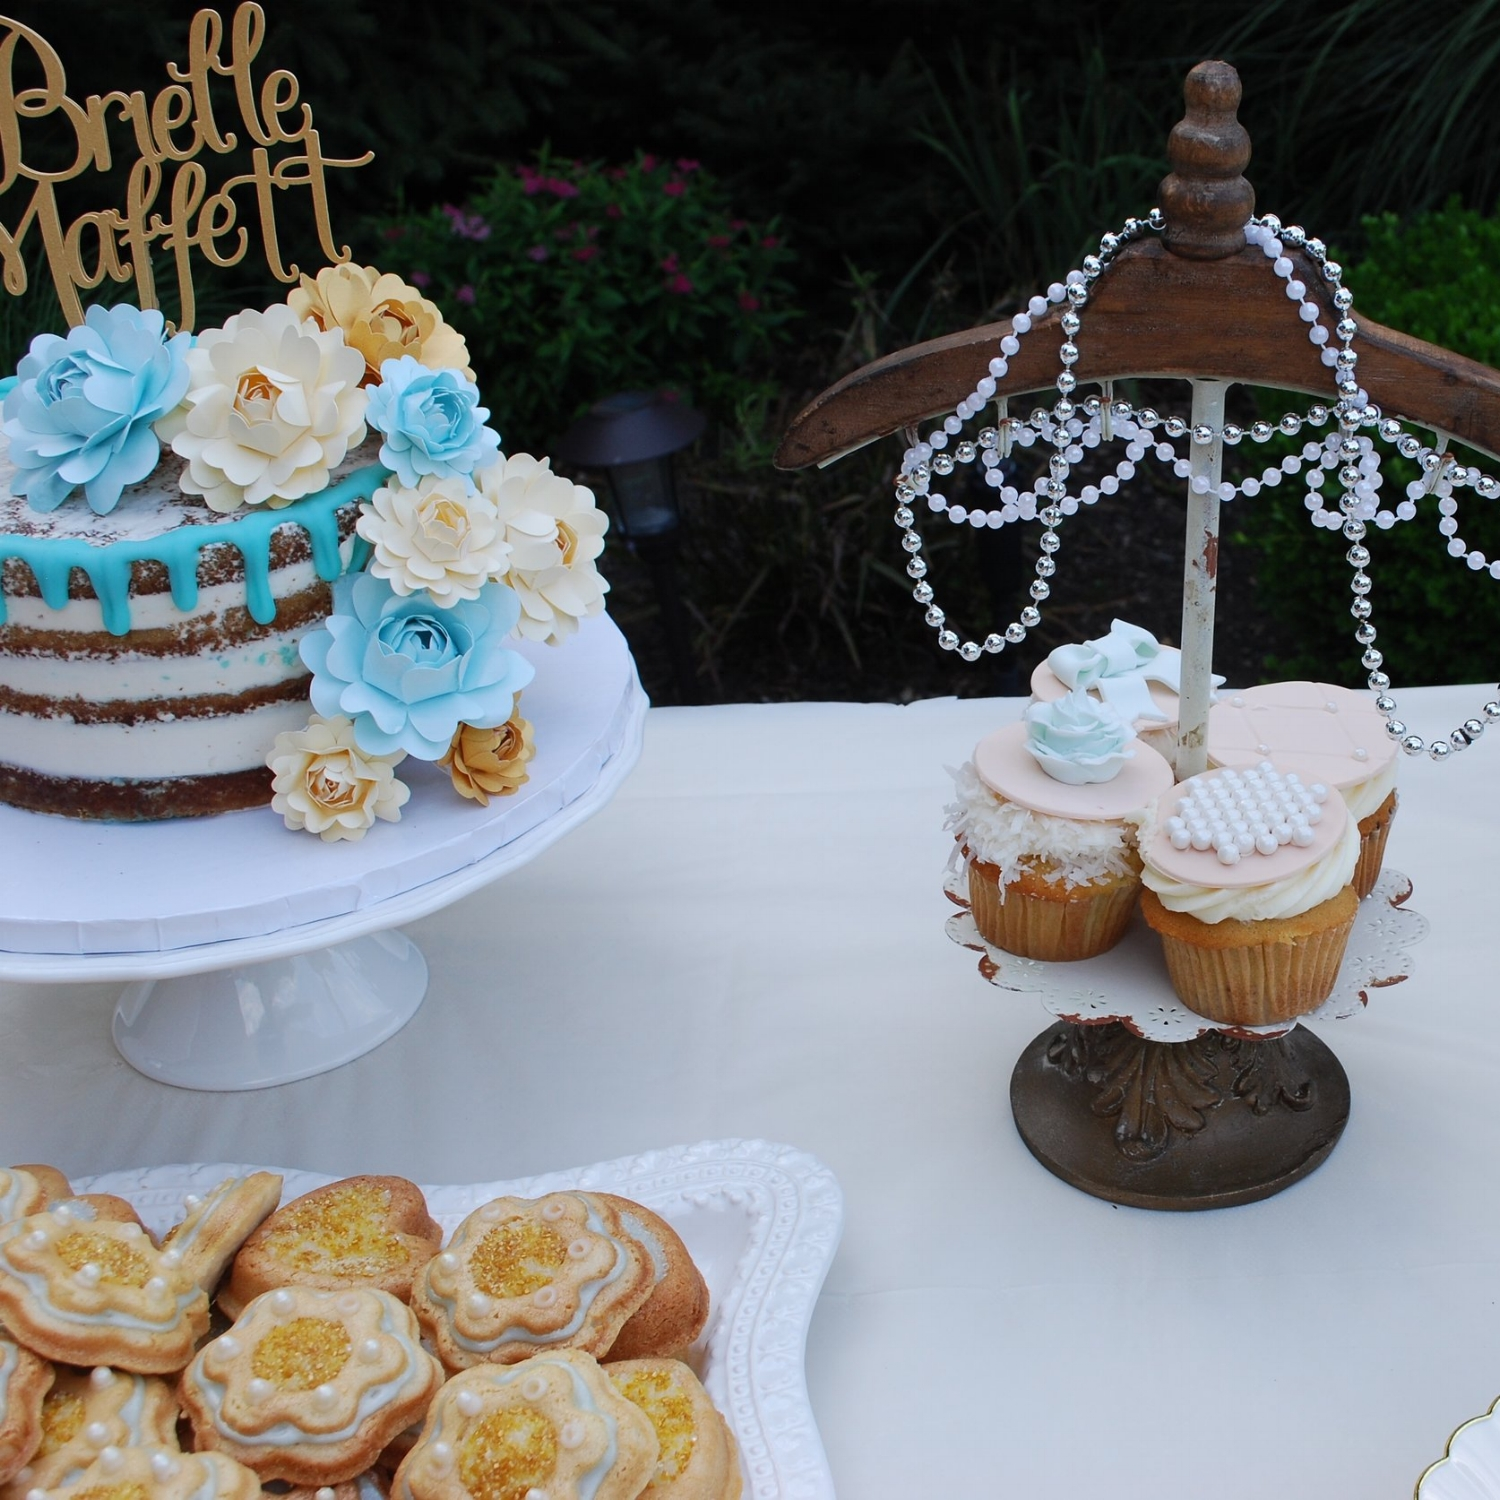 Kara Kakes also created specialty cupcakes in coconut, cannoli, and strawberry shortcake flavors.